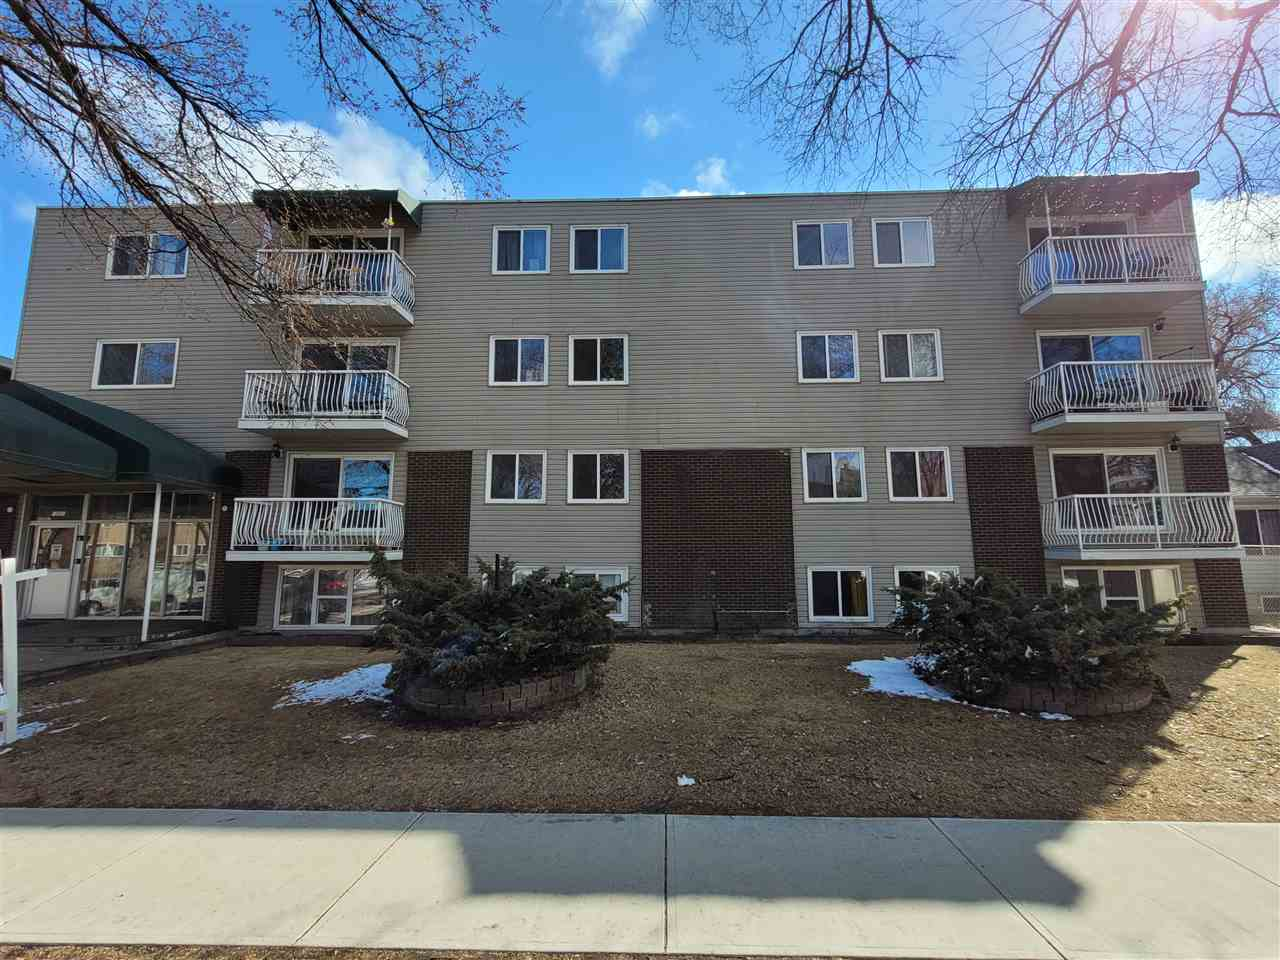 This centrally located condo in Queen Mary Park is an excellent fit for a first-time investor or buyer! This condo is within walking distance to MacEwan University, Metro Line LRT and only minutes away from the downtown core. It also provides easy access to the University of Alberta via public transit. The close proximity to Kingsway Mall, Rogers Place and fabulous downtown dining offers great convenience from day-to-day!  Very spacious 703 sq ft second floor unit with 1 large bedroom, 1 full bathroom and large living room overlooking the private balcony with newer triple pane windows and patio doors installed within the past few years. It is newly renovated with brand new laminate and vinyl flooring throughout the entire unit that provides for easy fuss-free cleaning and maintenance! The kitchen has new backsplash, countertops and provides ample cabinets. The new and modern-looking tub tile surround in the bathroom, abundant storage space and an assigned parking stall at the back of the building complet